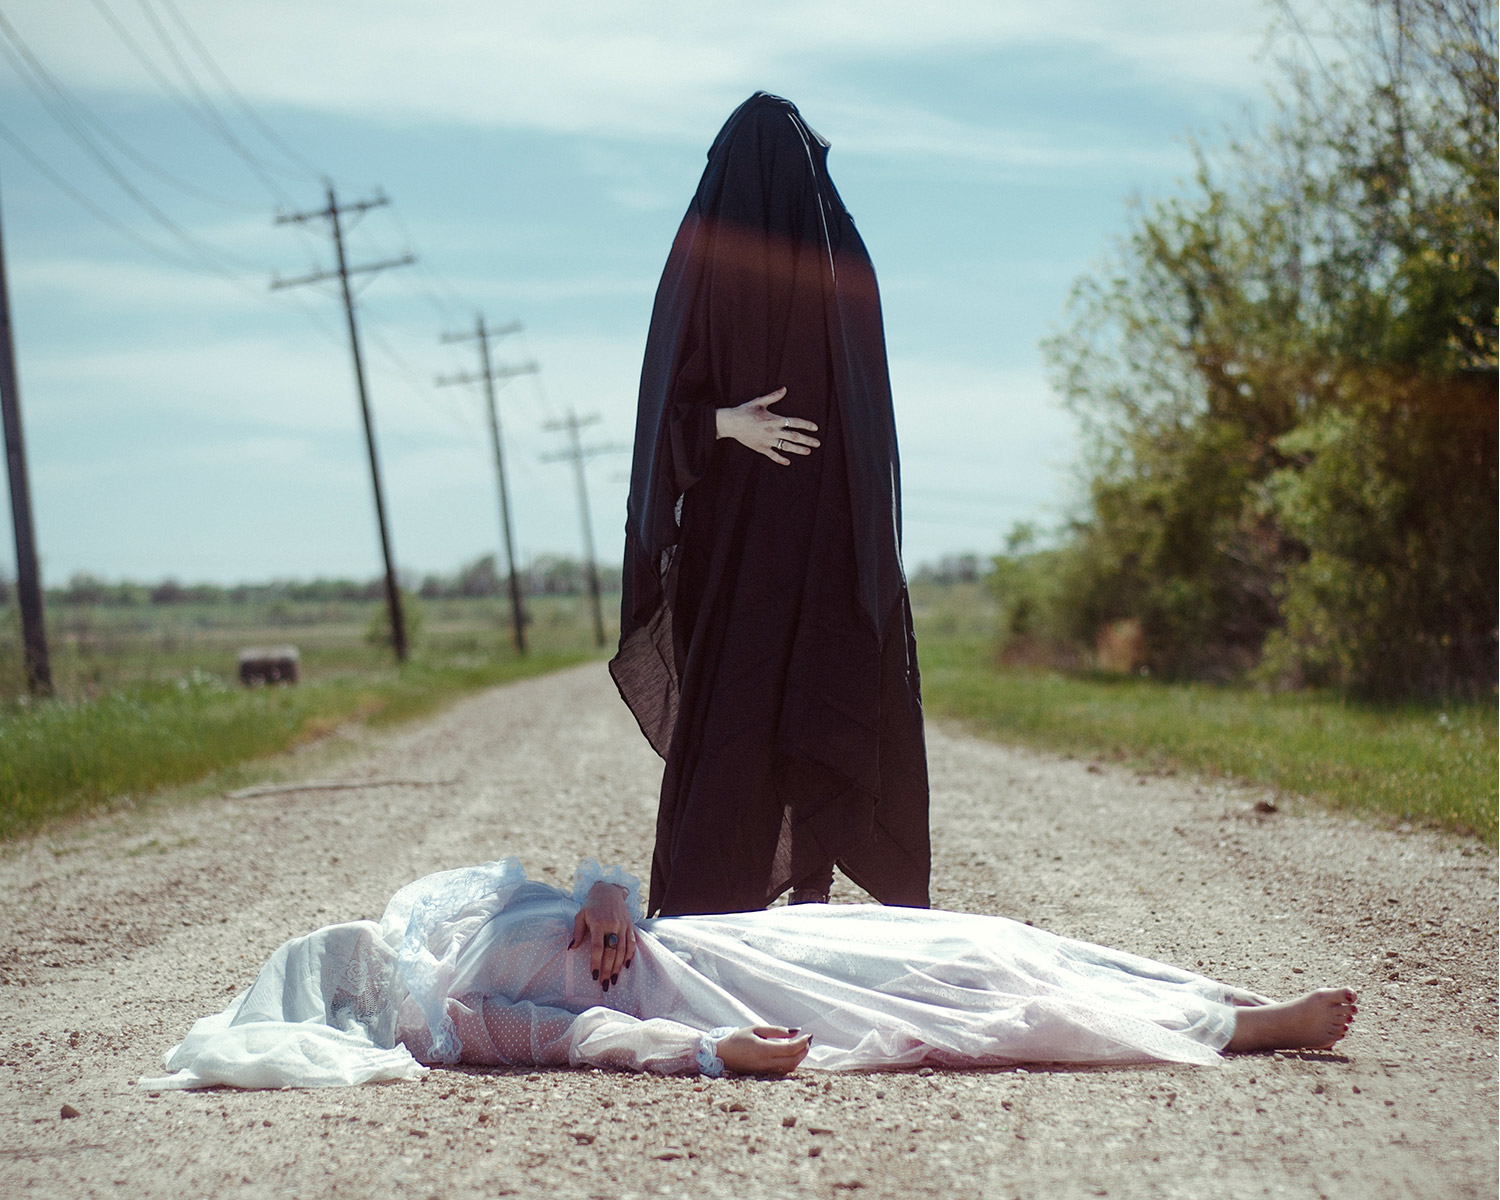 Christopher McKenney - dark figure over shrouded body on road